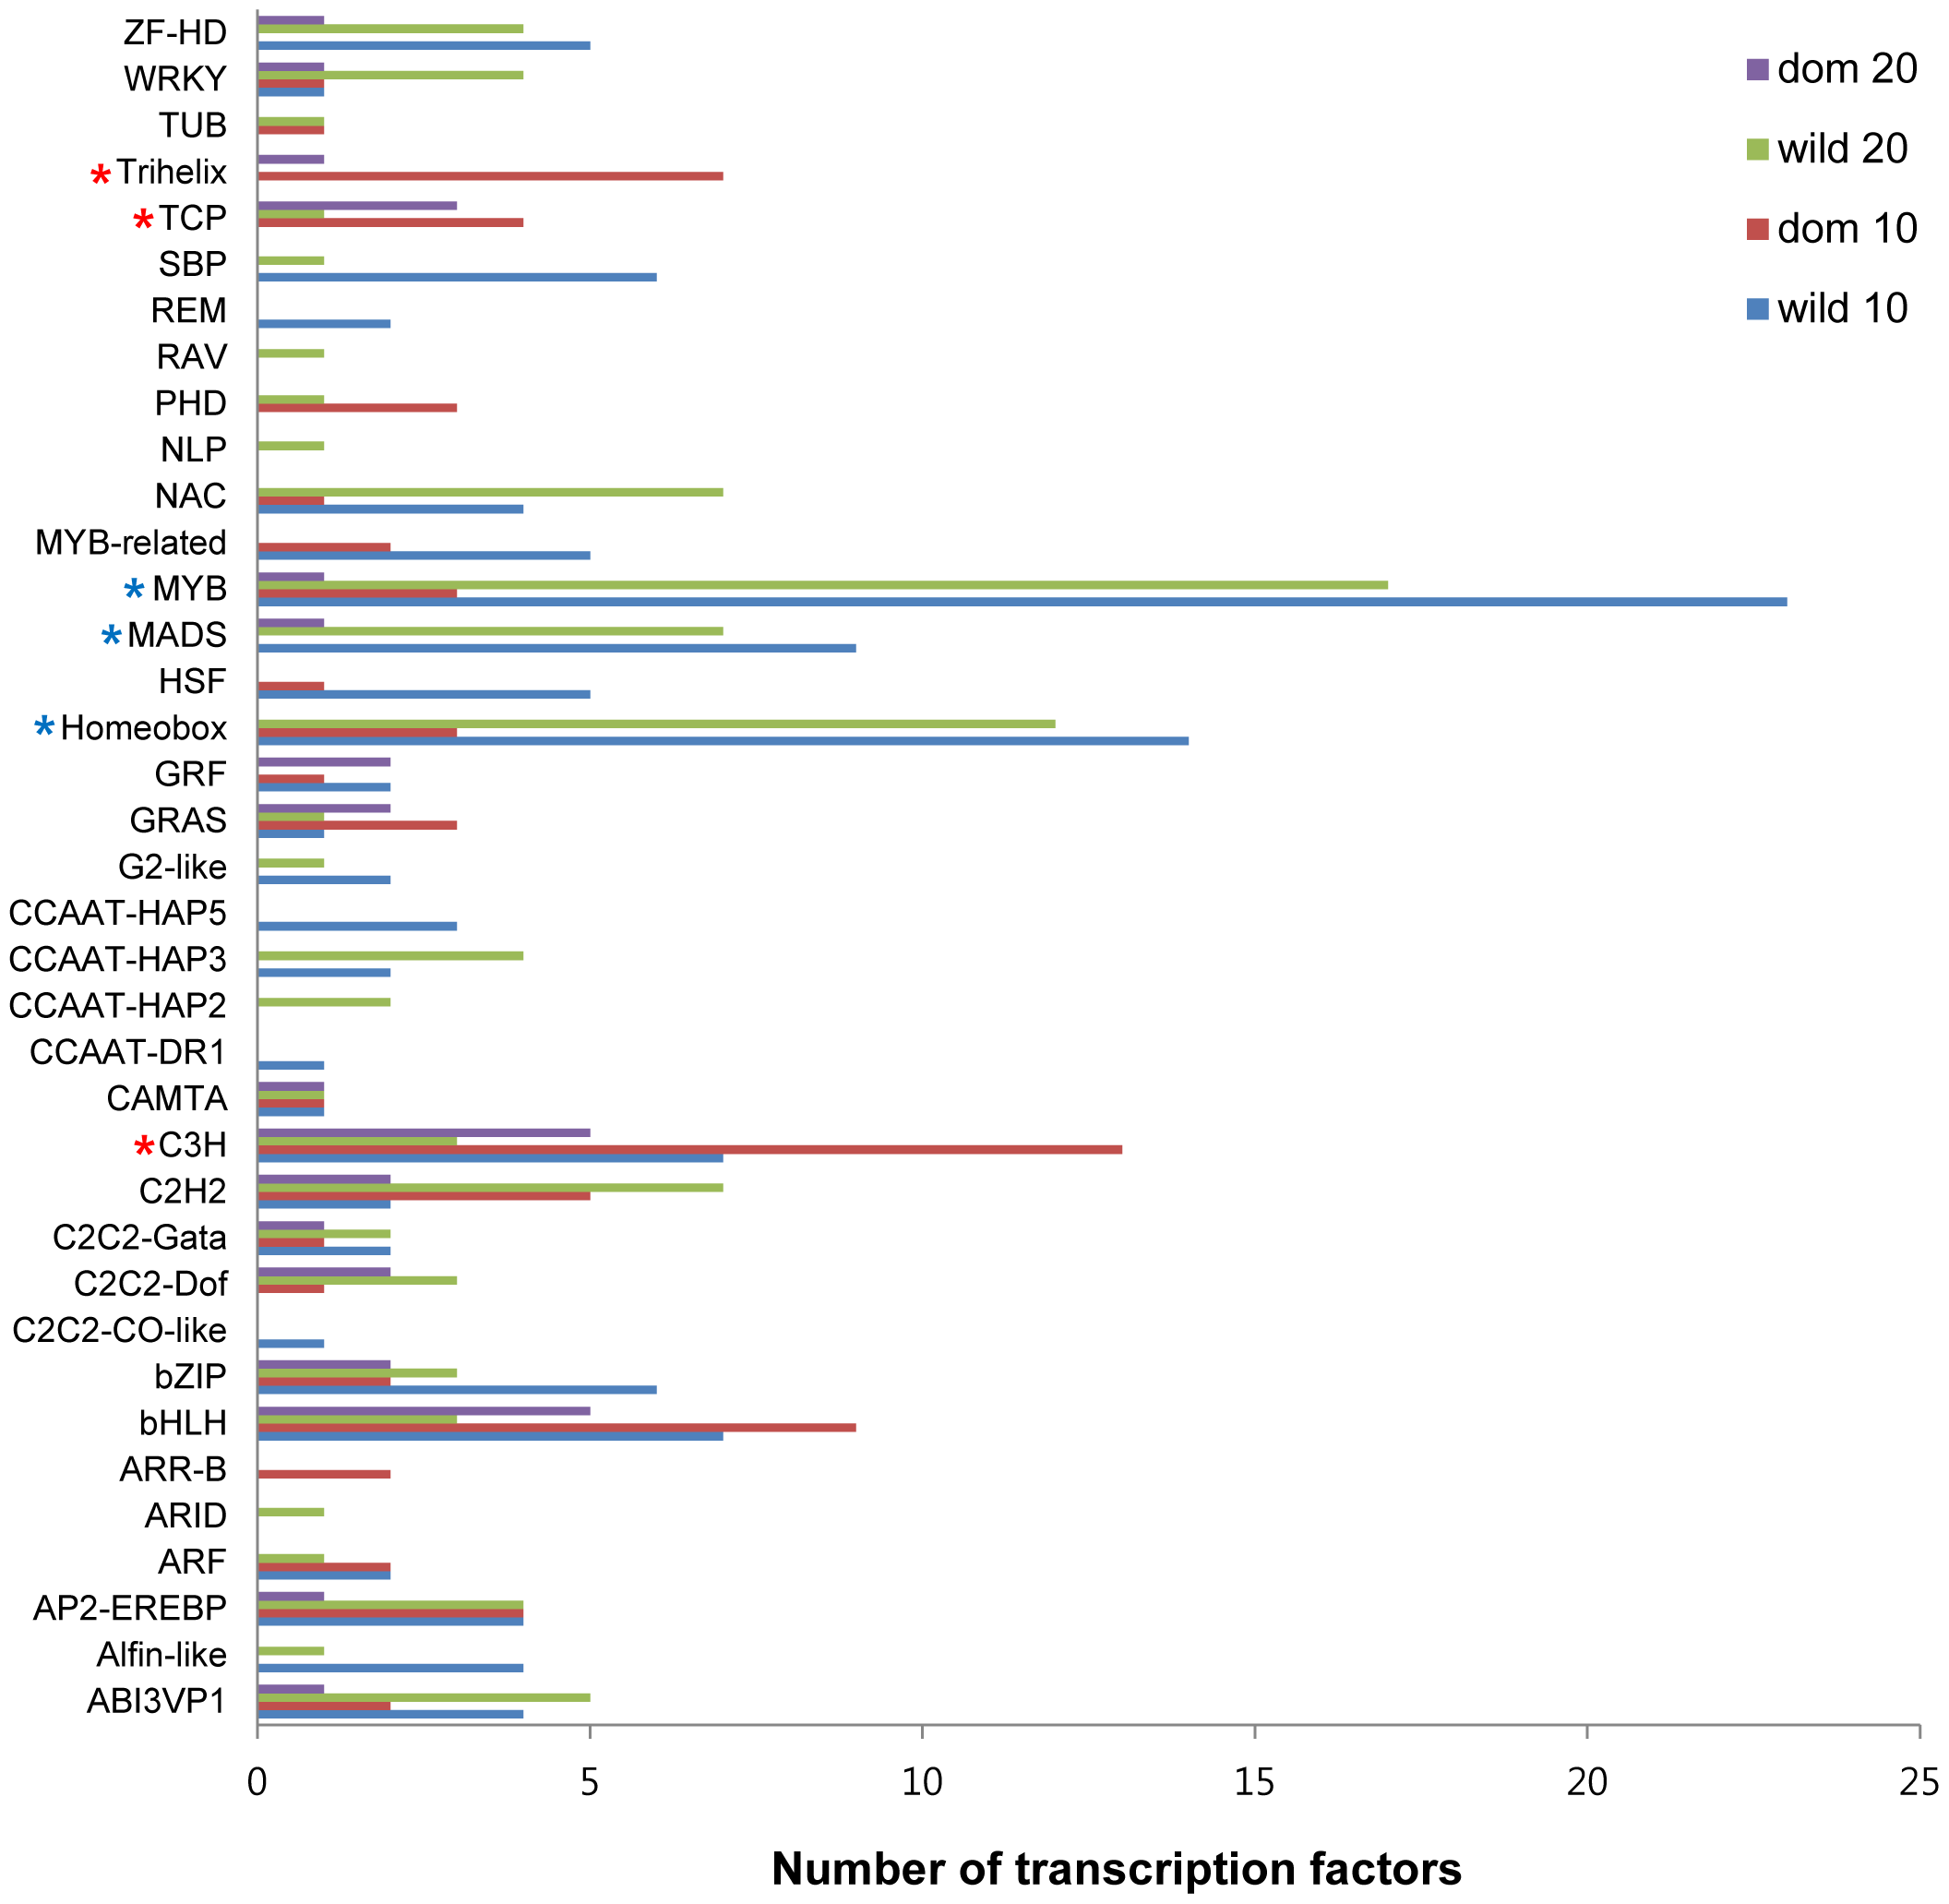 Number of TFs differentially expressed between wild and domesticated cotton.